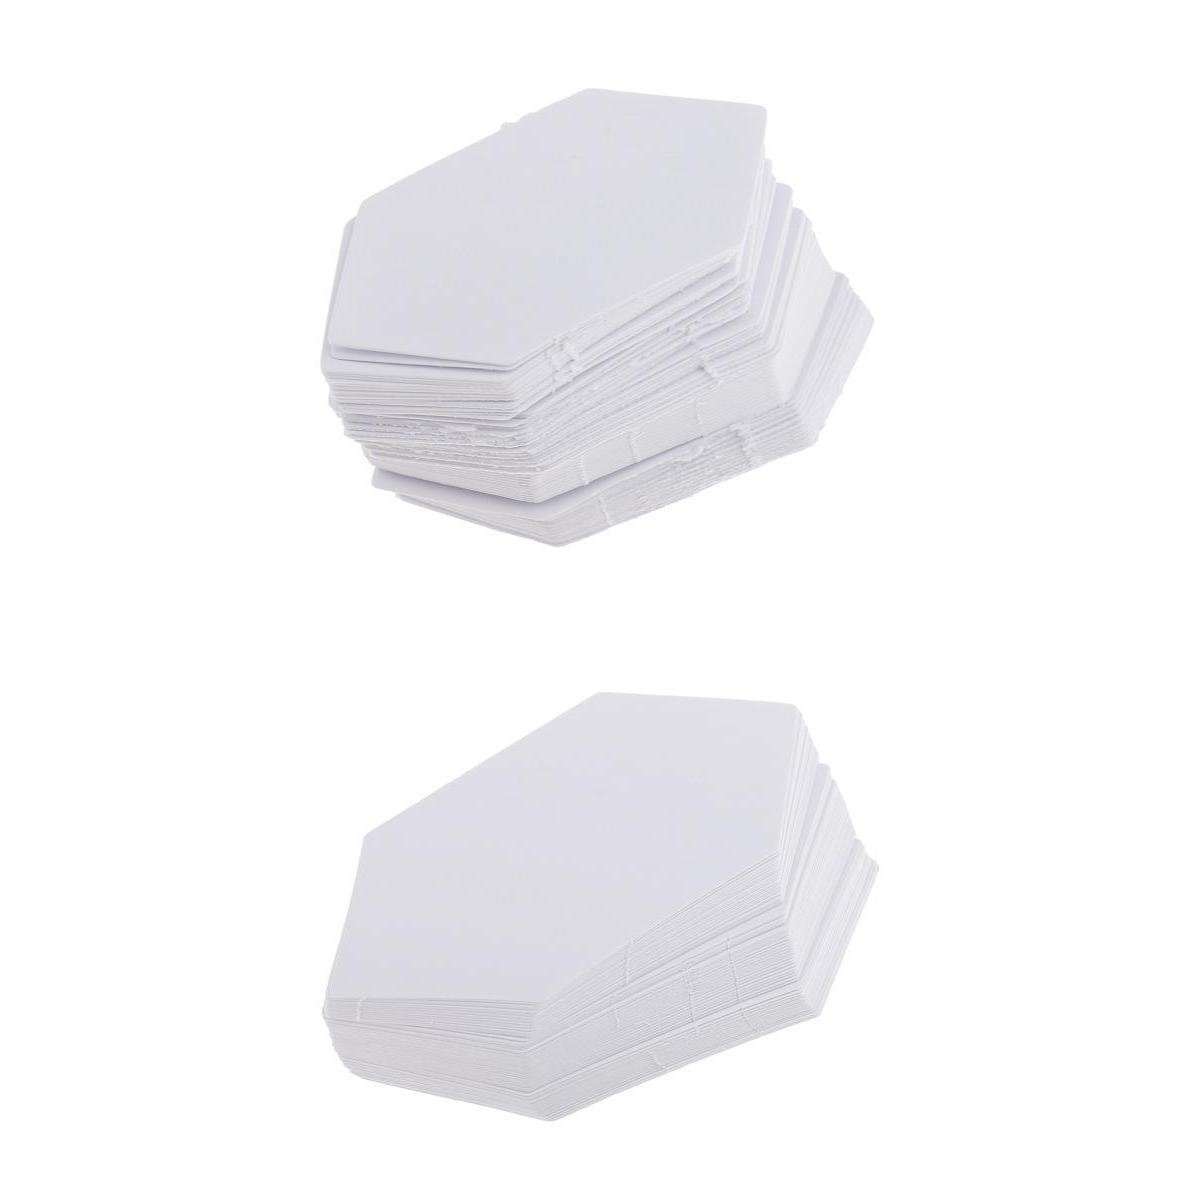 MagiDeal 200 Piece Hexagon Paper Quilting Templates English Paper Piecing Patchwork Template 4.2/7.9cm